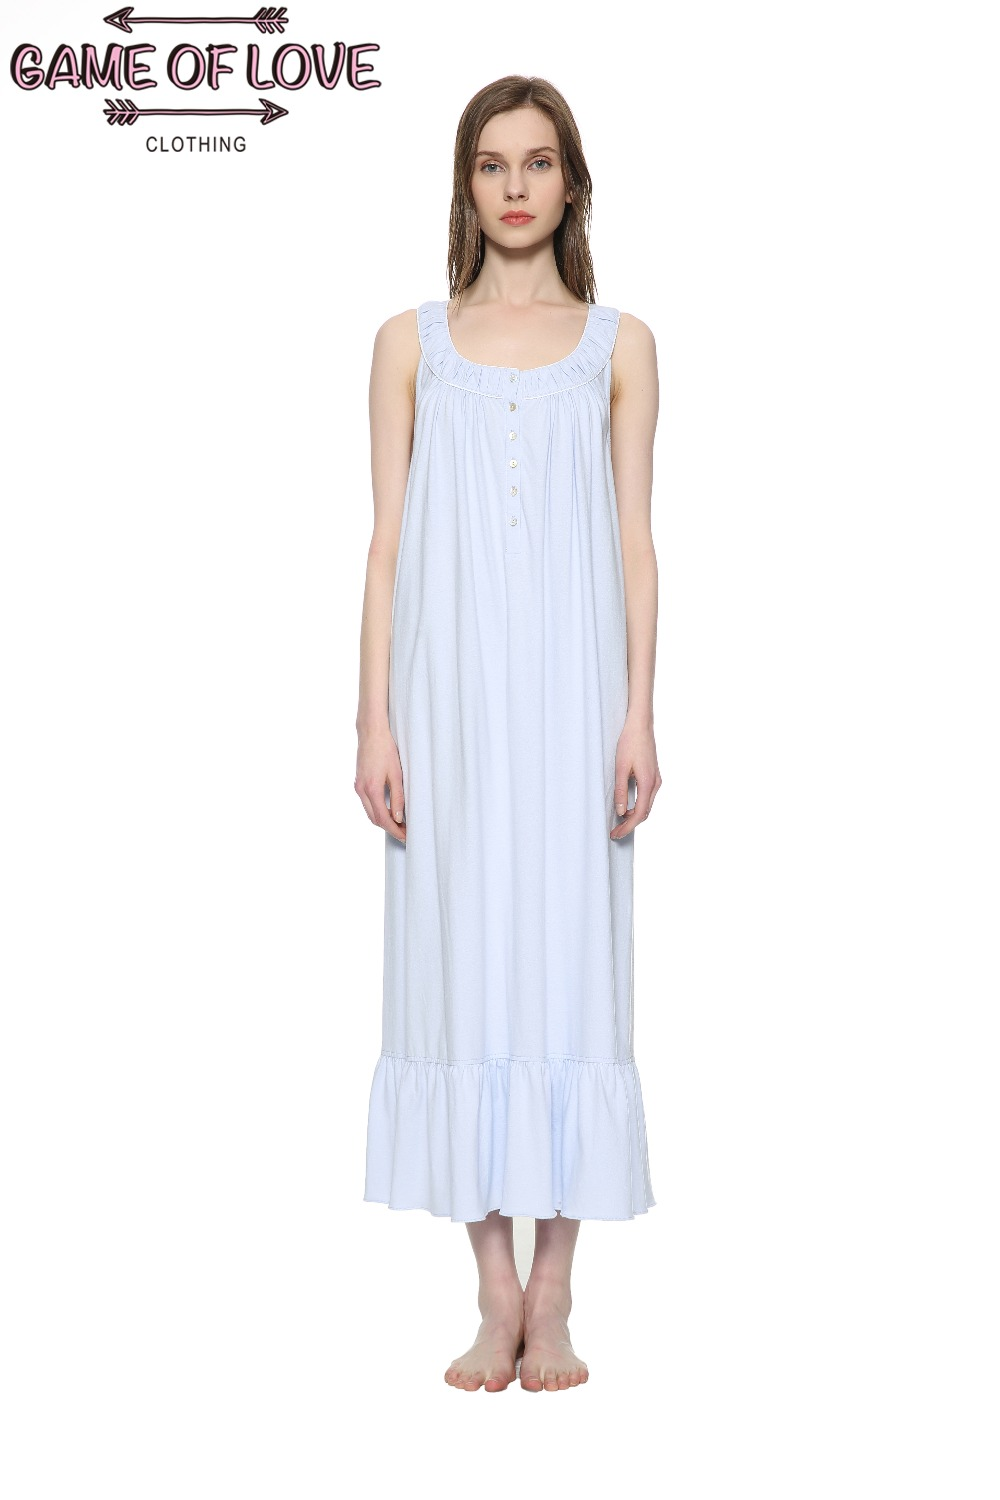 Game Of Love Women' 100 Cotton Floral Long Sleeveless Nightgown Sleepwear-in Nightgowns